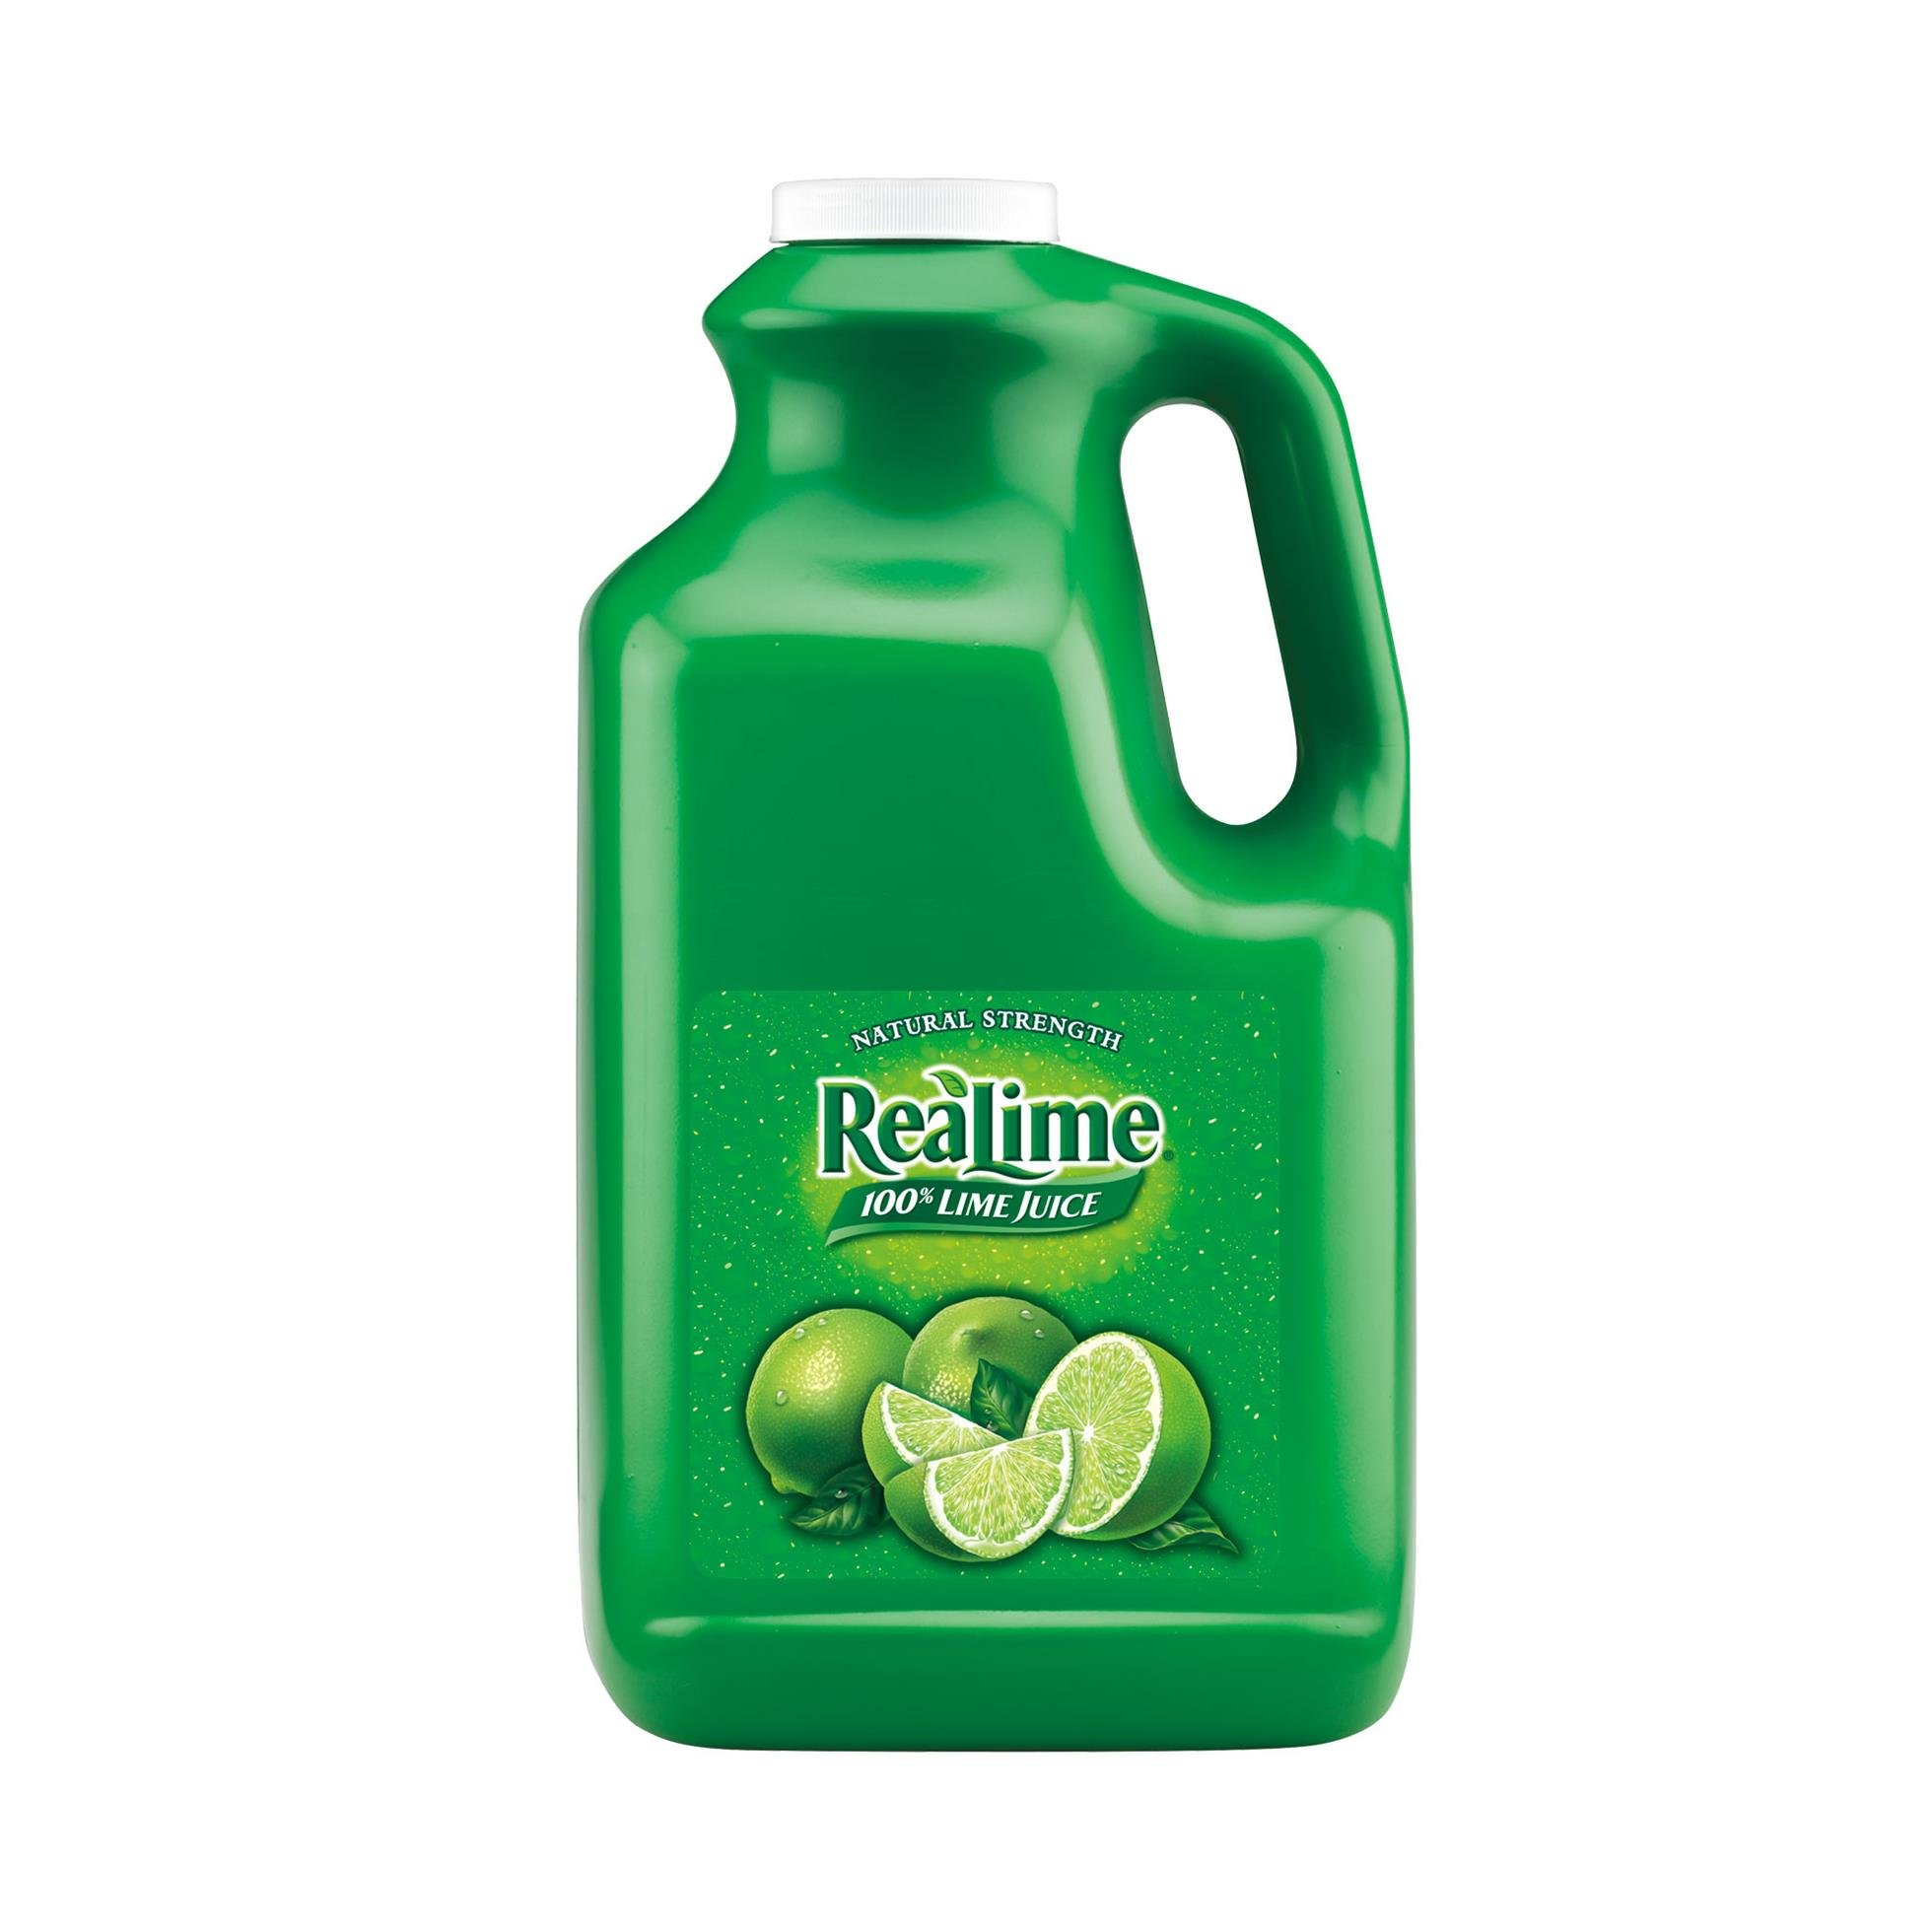 ReaLime 100% Lime Juice, 1 gal bottles (Pack of 4)